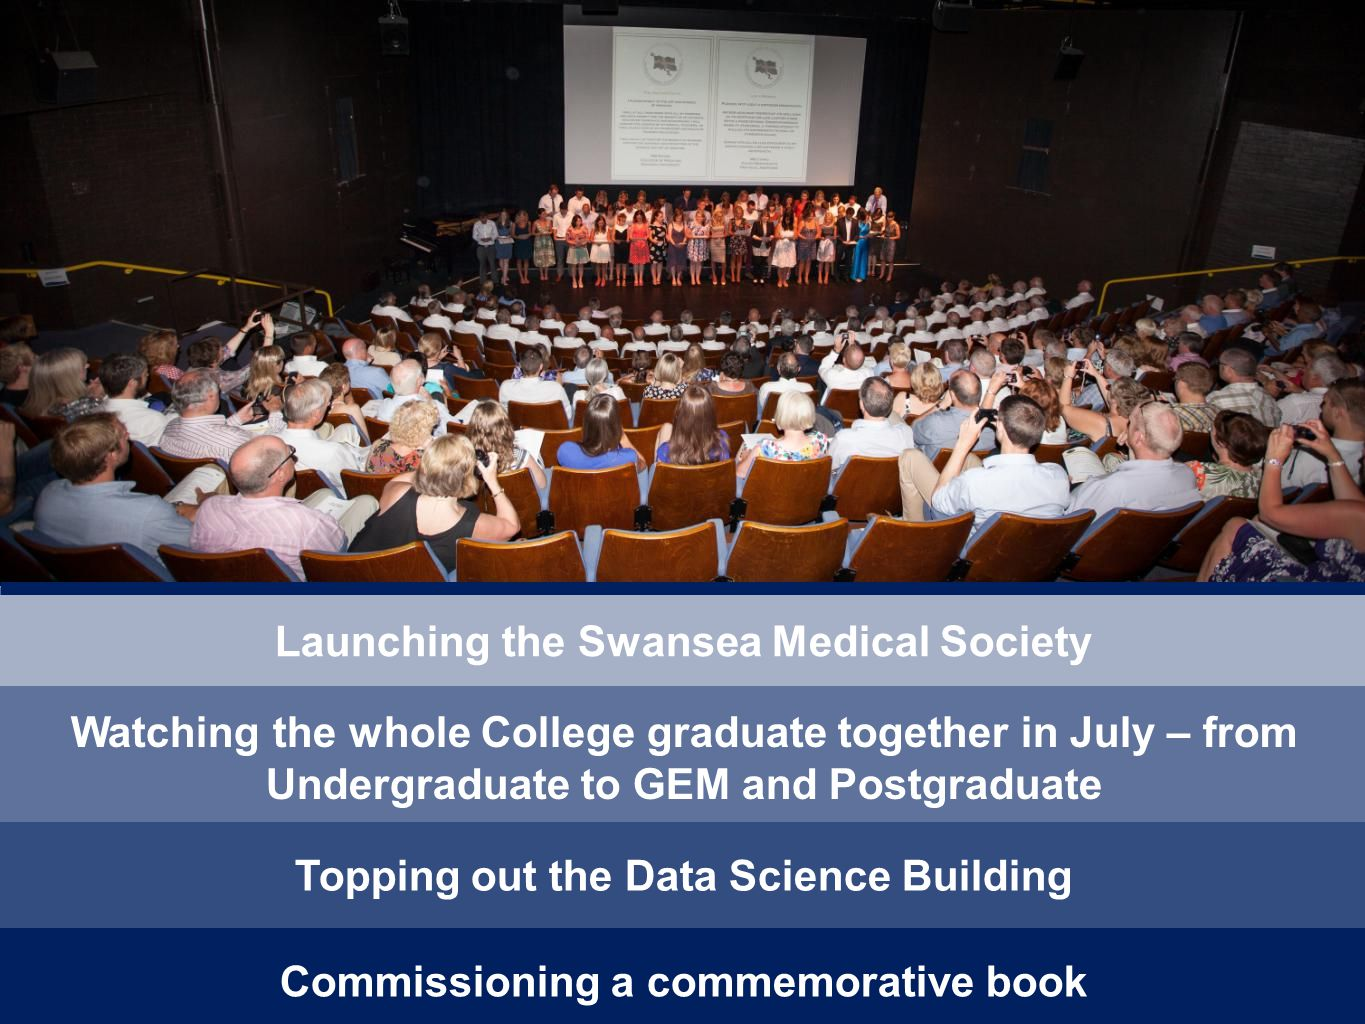 Launching the Swansea Medical Society Watching the whole College graduate together in July – from Undergraduate to GEM and Postgraduate Topping out the Data Science Building Commissioning a commemorative book